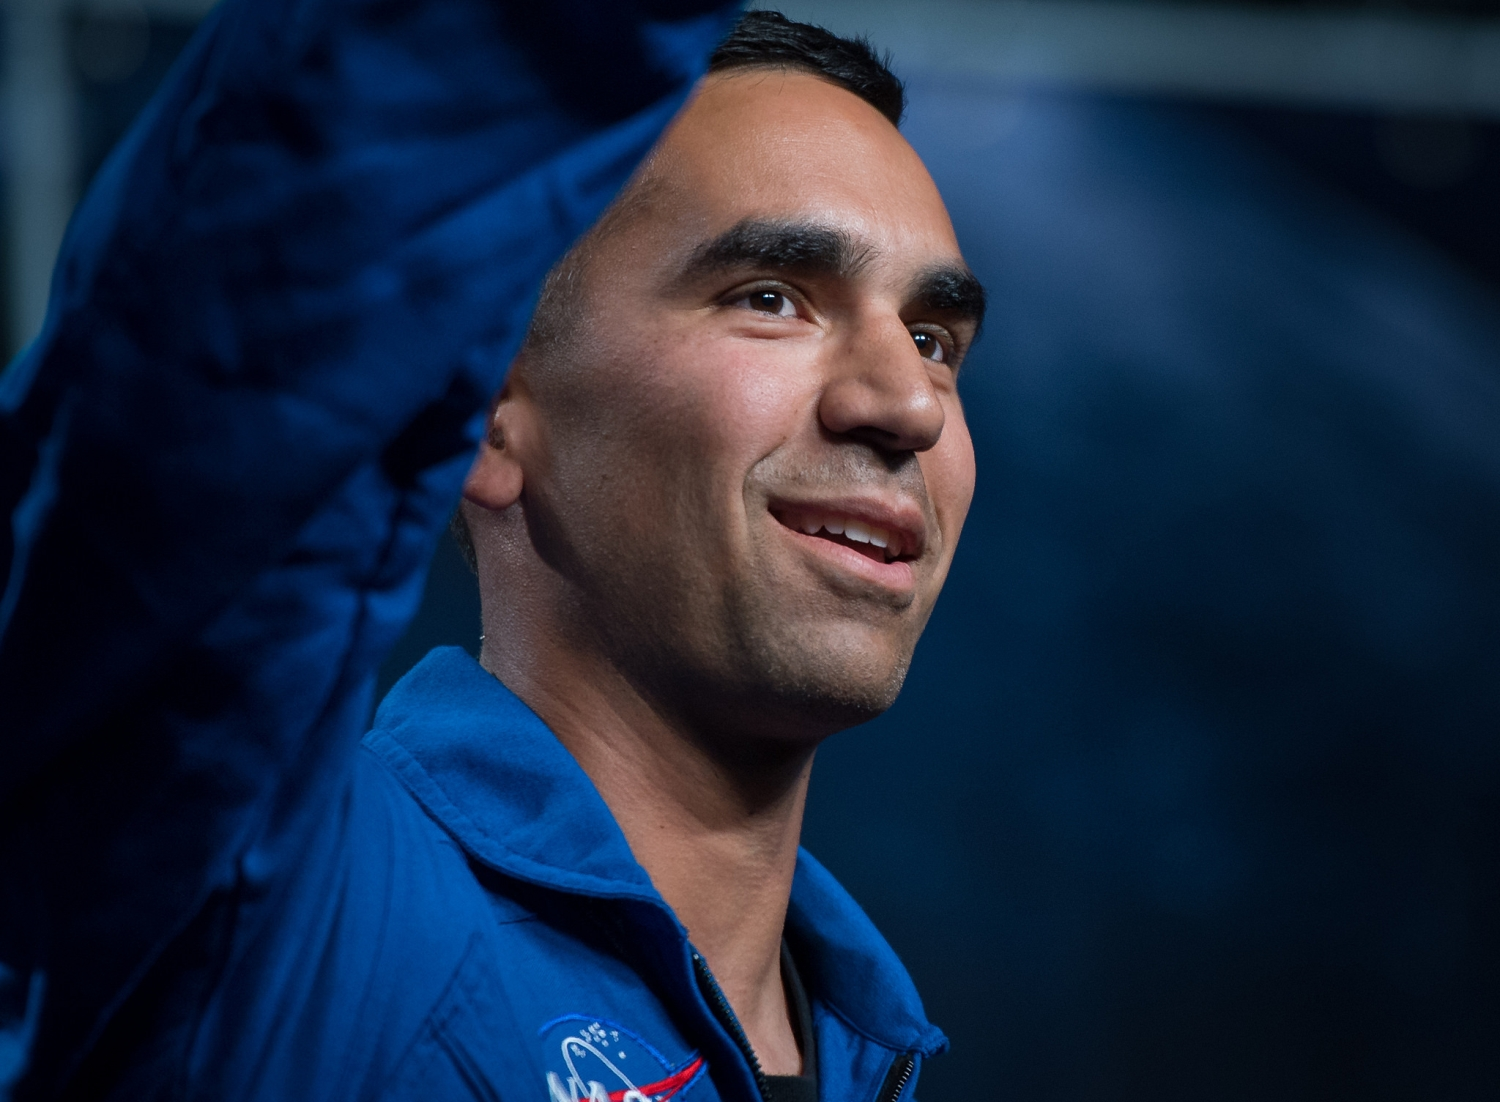 Thirty-nine-year-old NASA astronaut candidate Raja Chari waves as he is introduced as one of 12 new candidates at NASA.